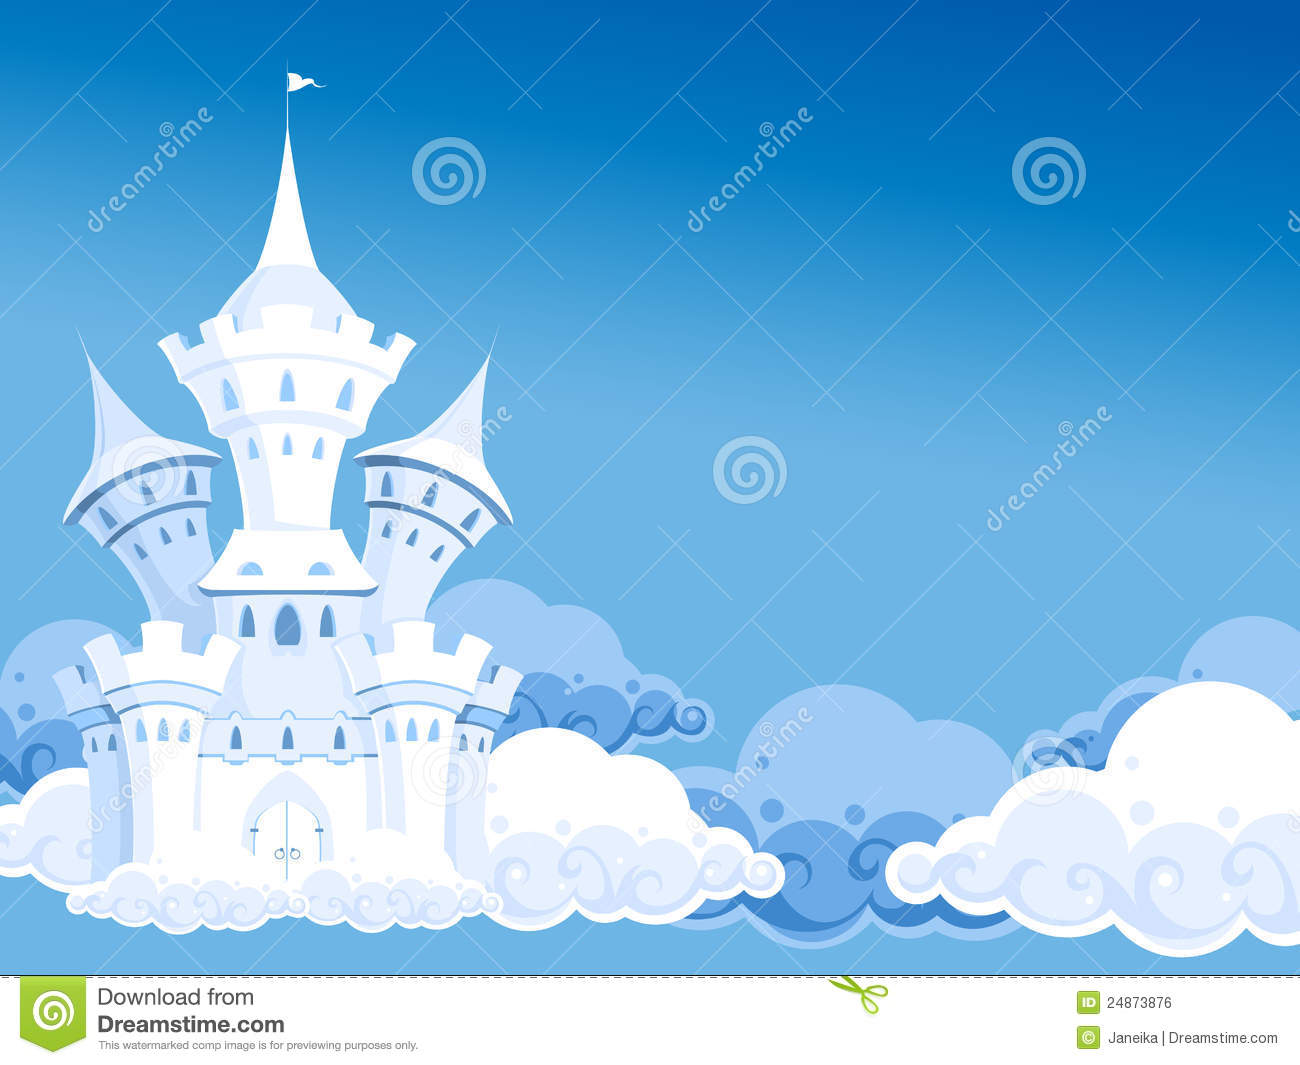 Castle Royalty Free Stock Image - Image: 24873876